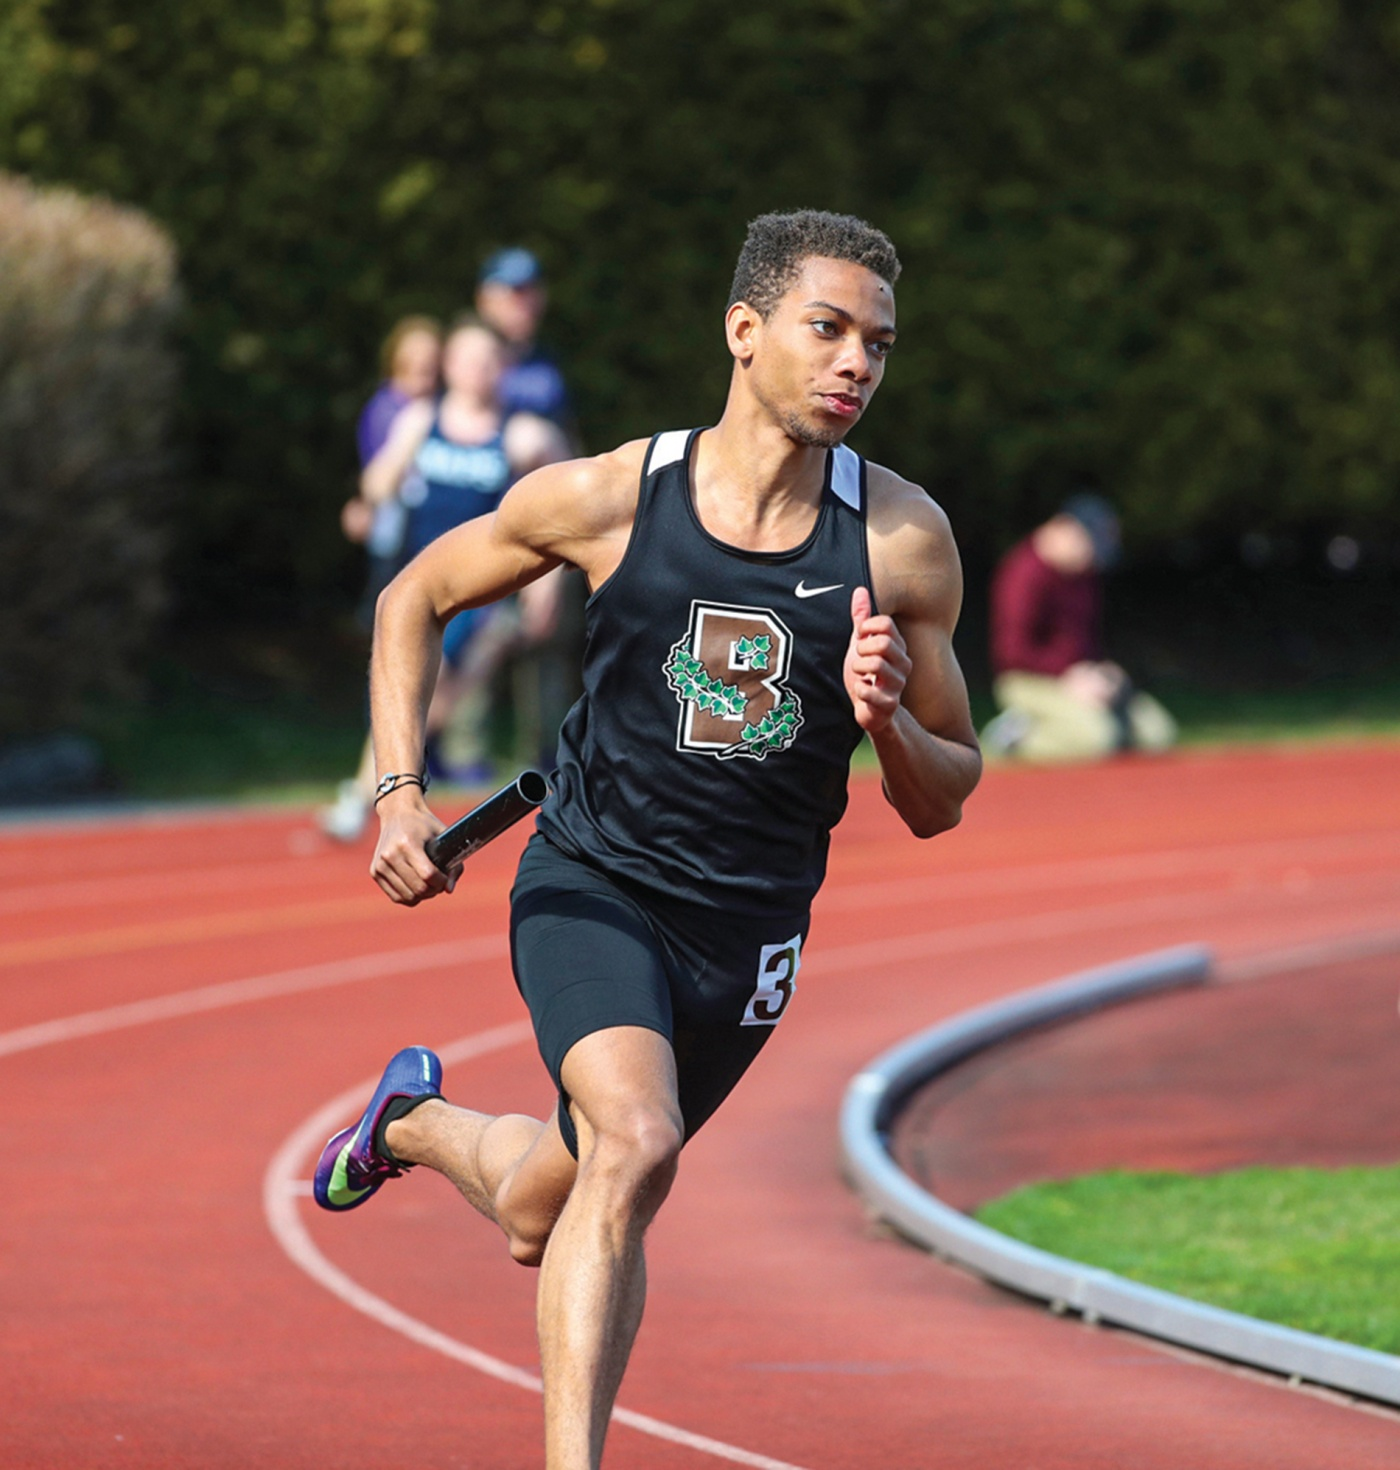 Runner Kevin Boyce '21 on the track